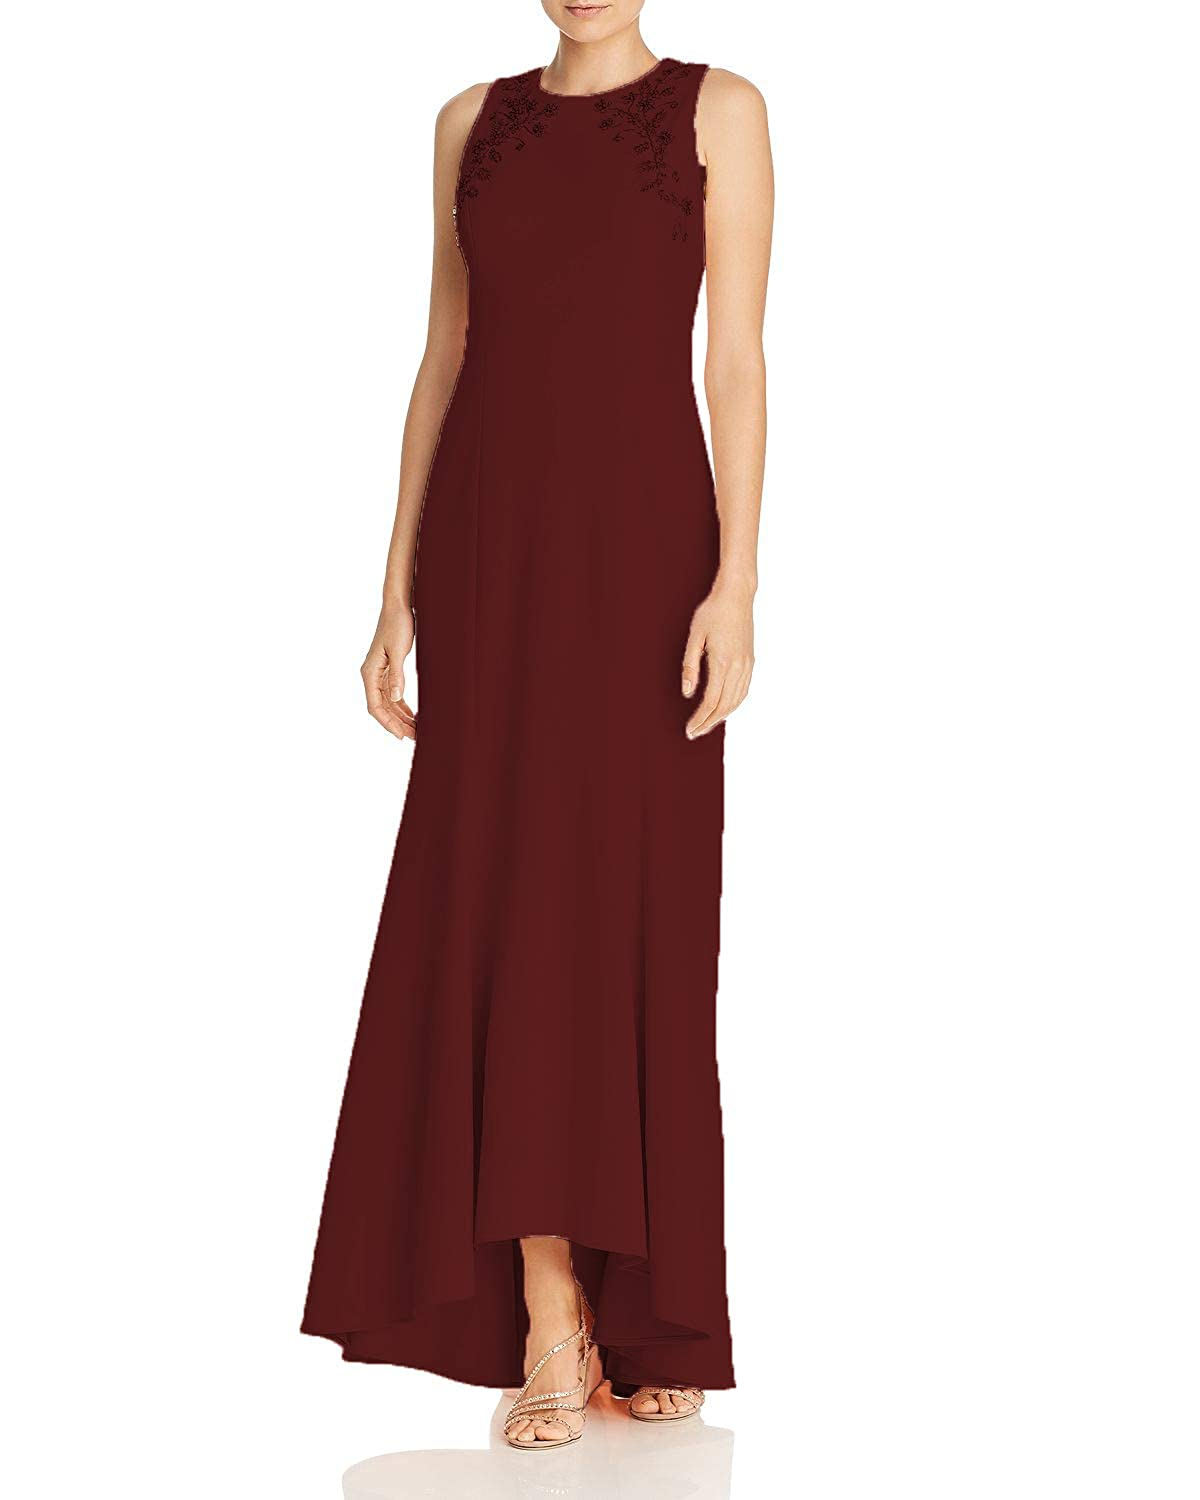 Burgundy Wanshaqin Women's Embellished Mermaid Evening Party Gown Wedding Party Mother of The Bride Dress